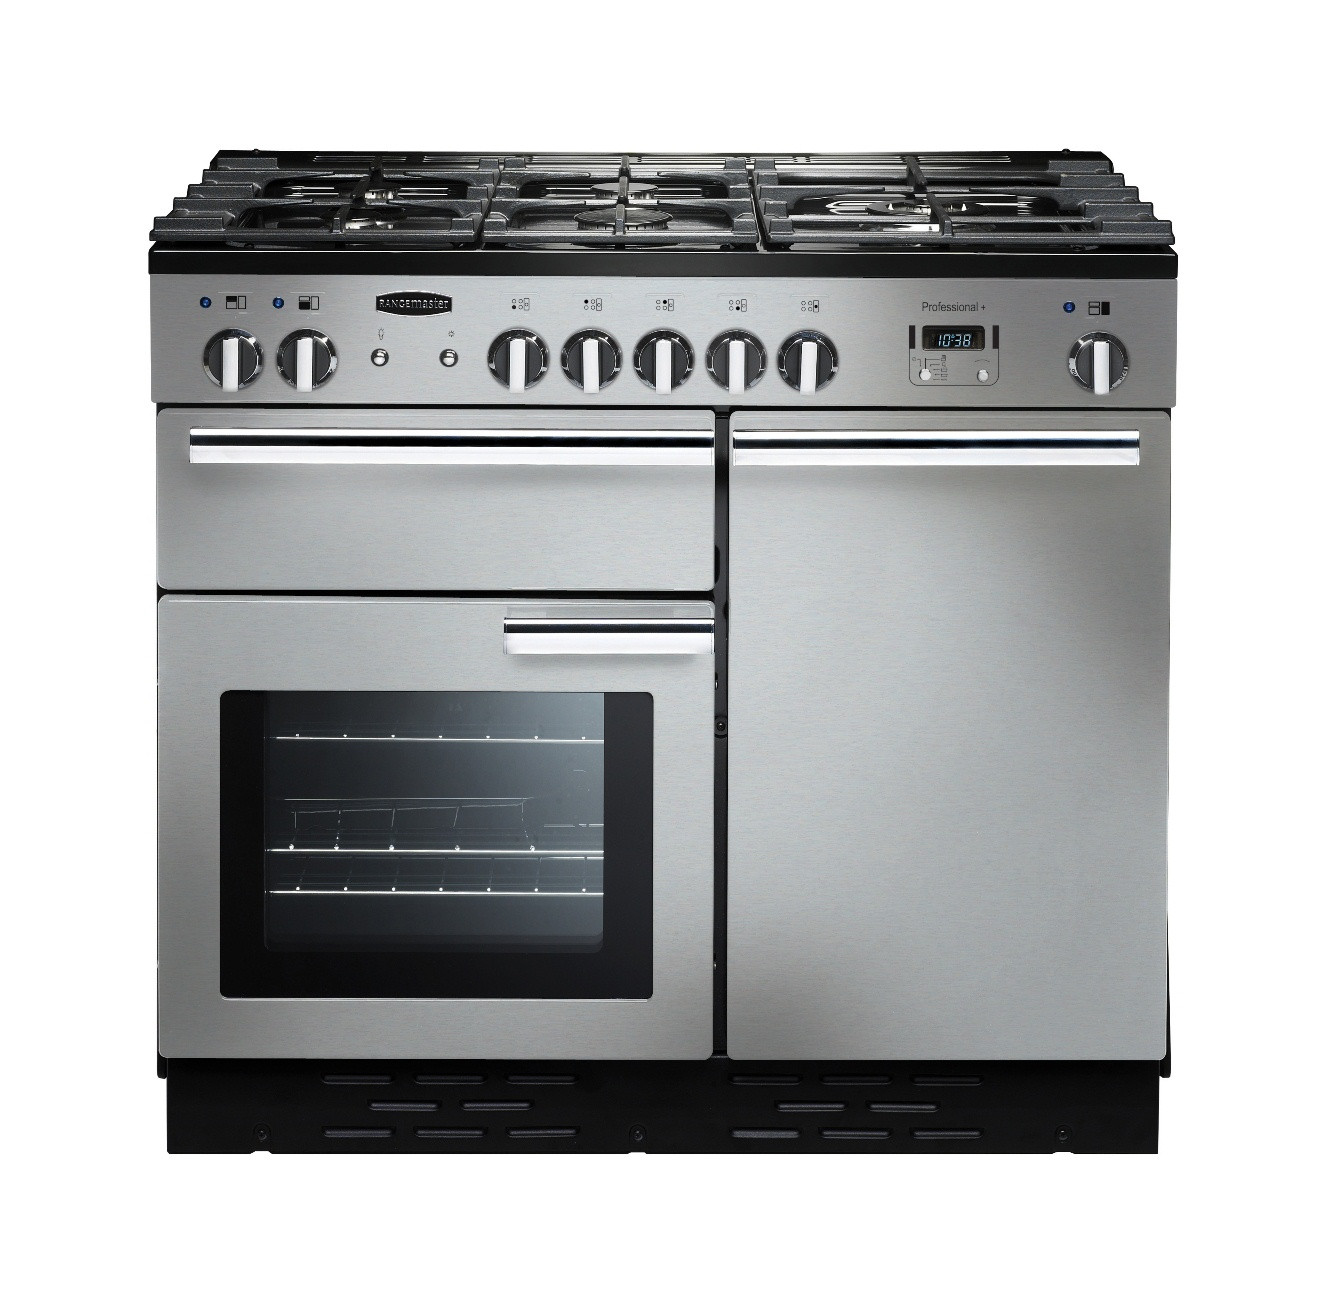 Rangemaster Professional Plus 100 Dual Fuel Stainless Steel Range Cooker PROP100DFFSS/C 92590